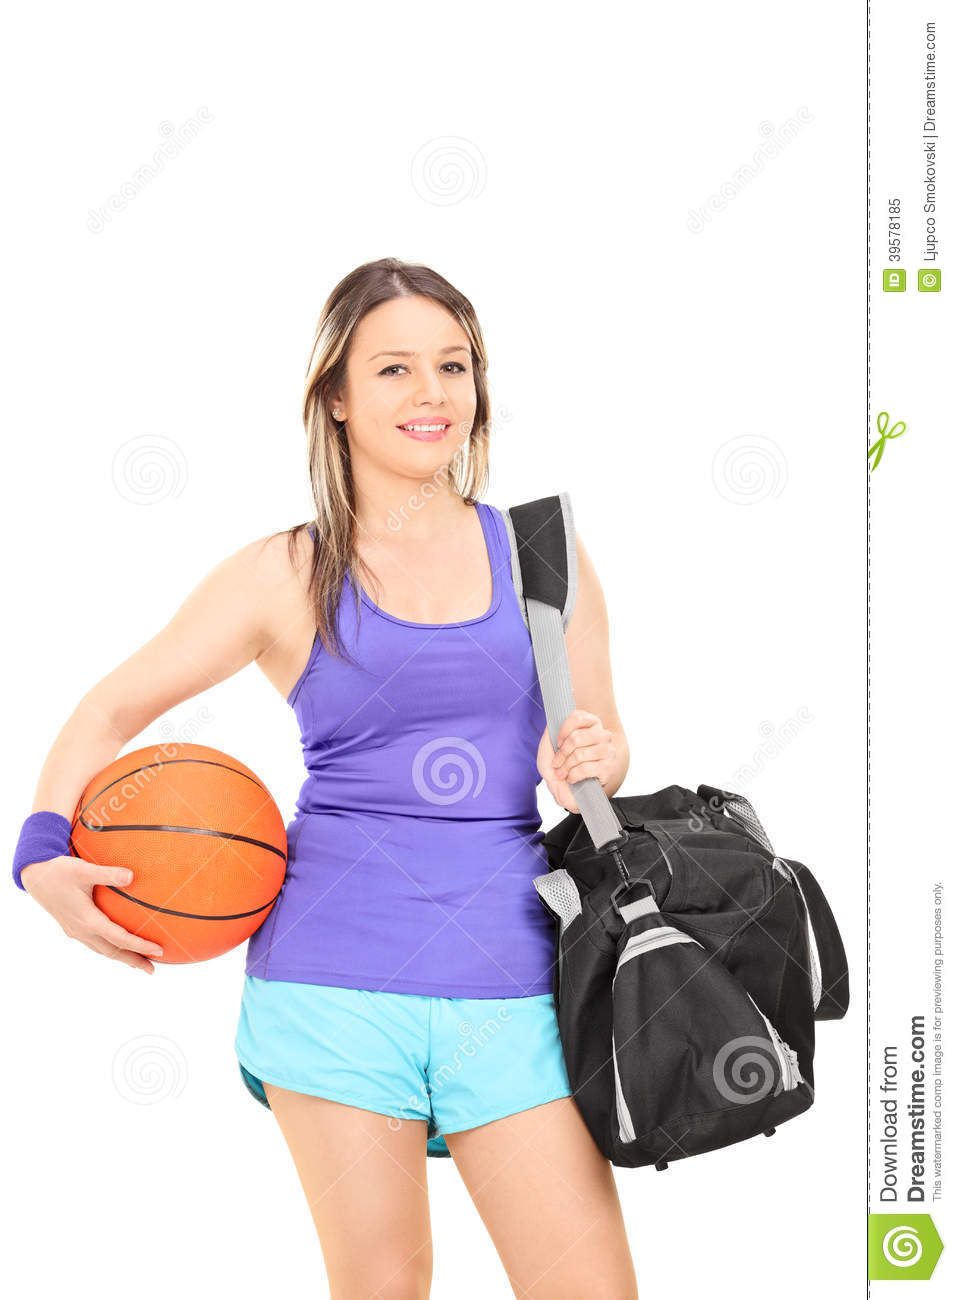 Original Woman Holding Shopping Bags Royalty Free Stock Photo - Image 17050805